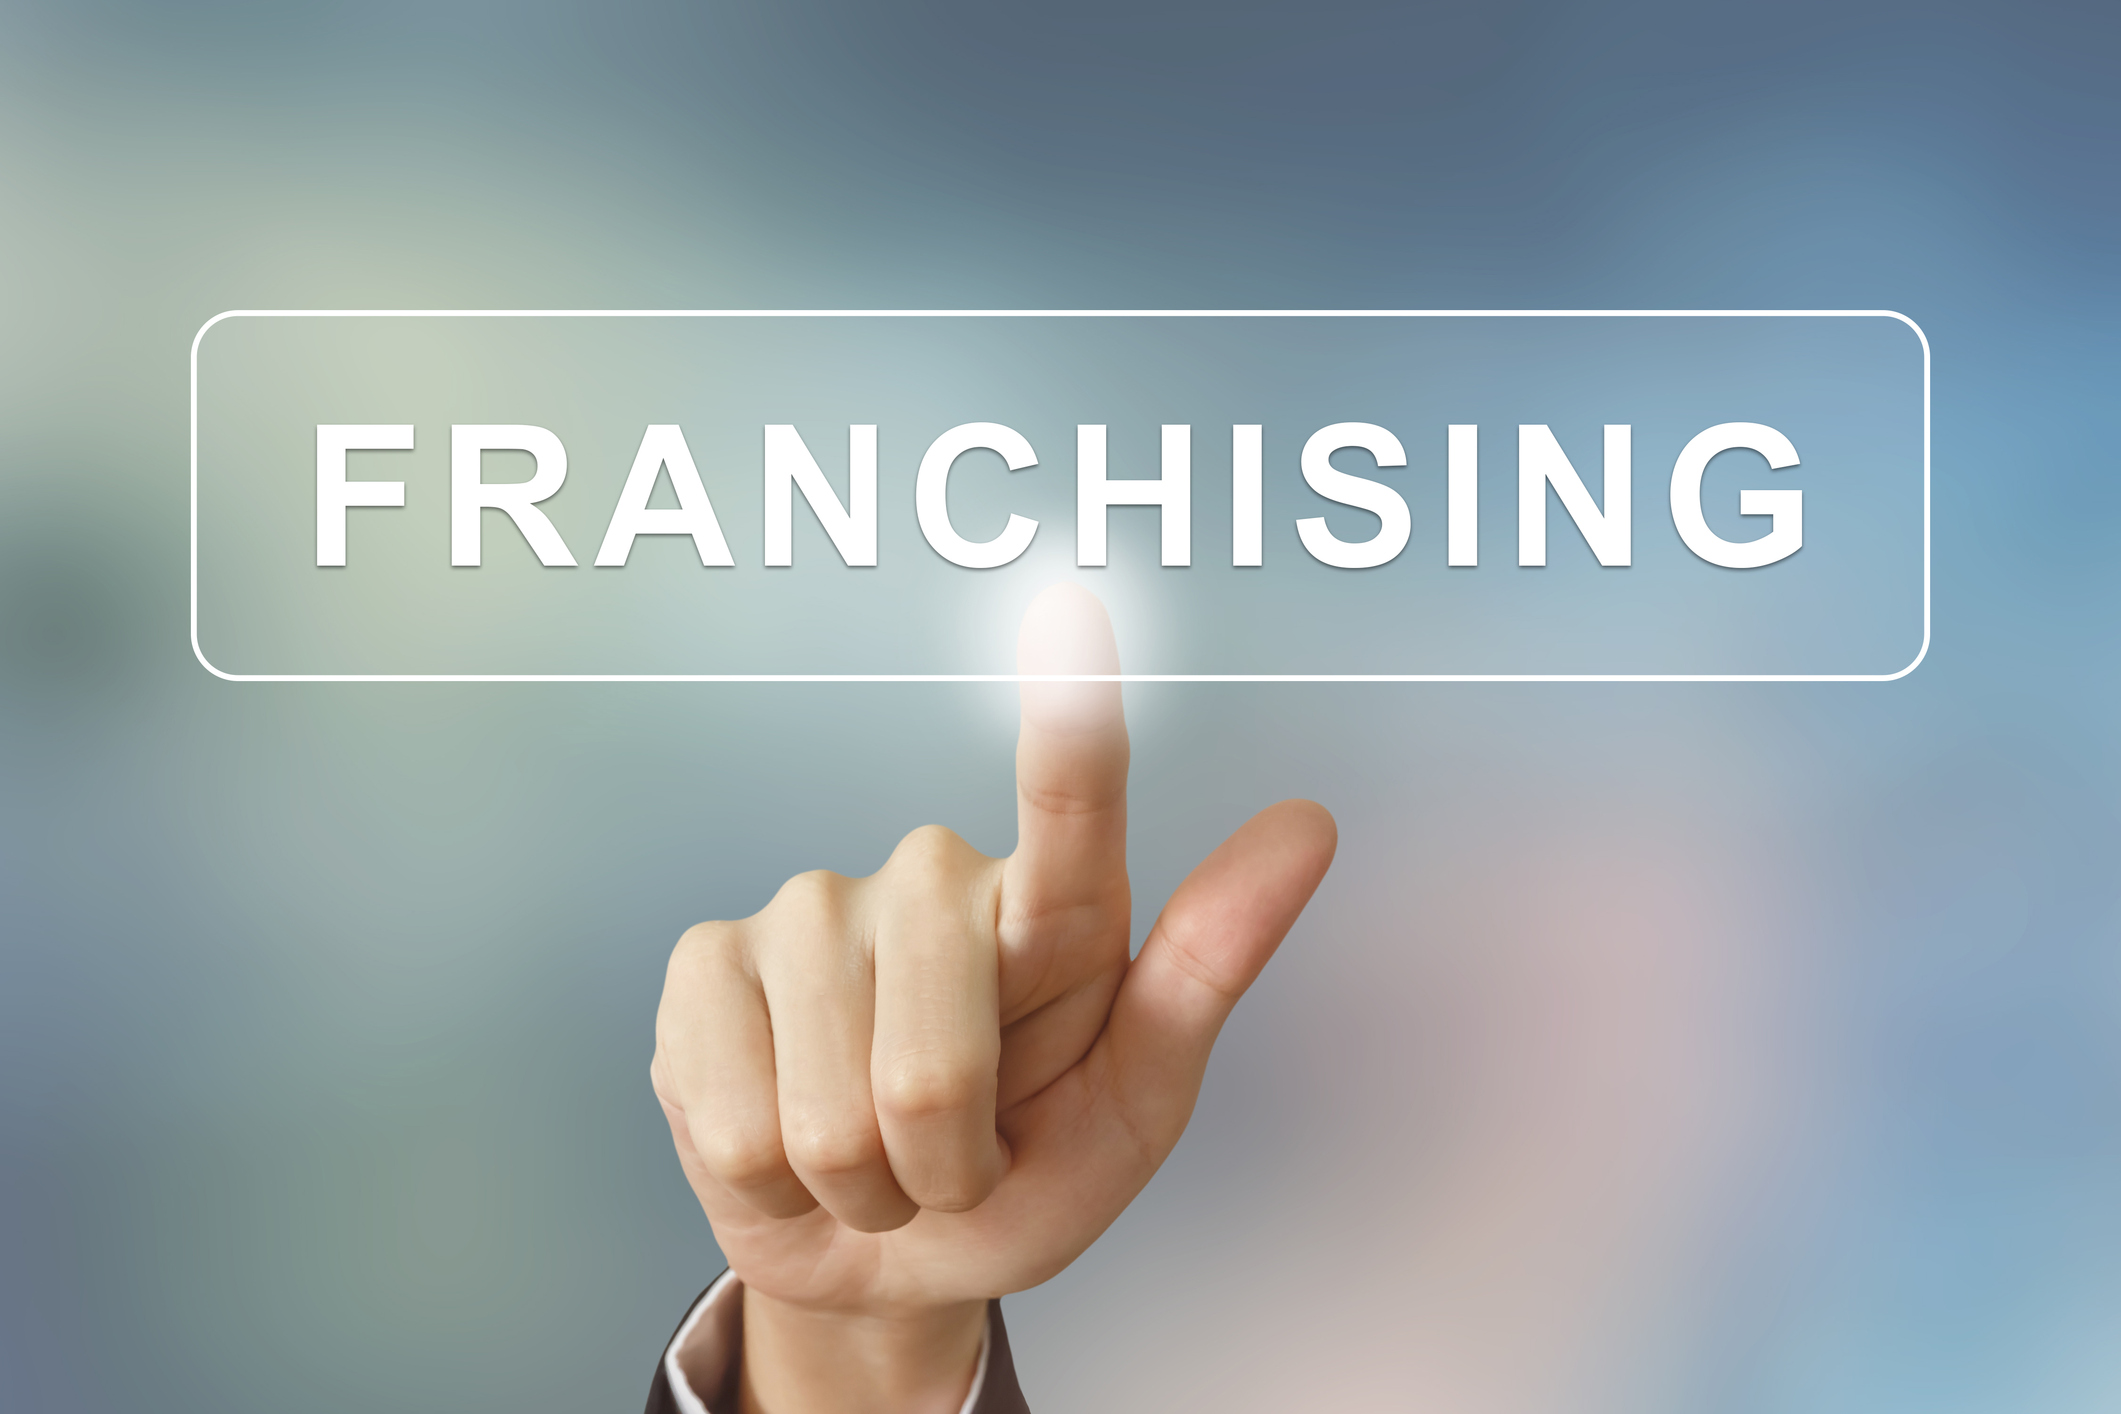 Tips for Franchising Your Business